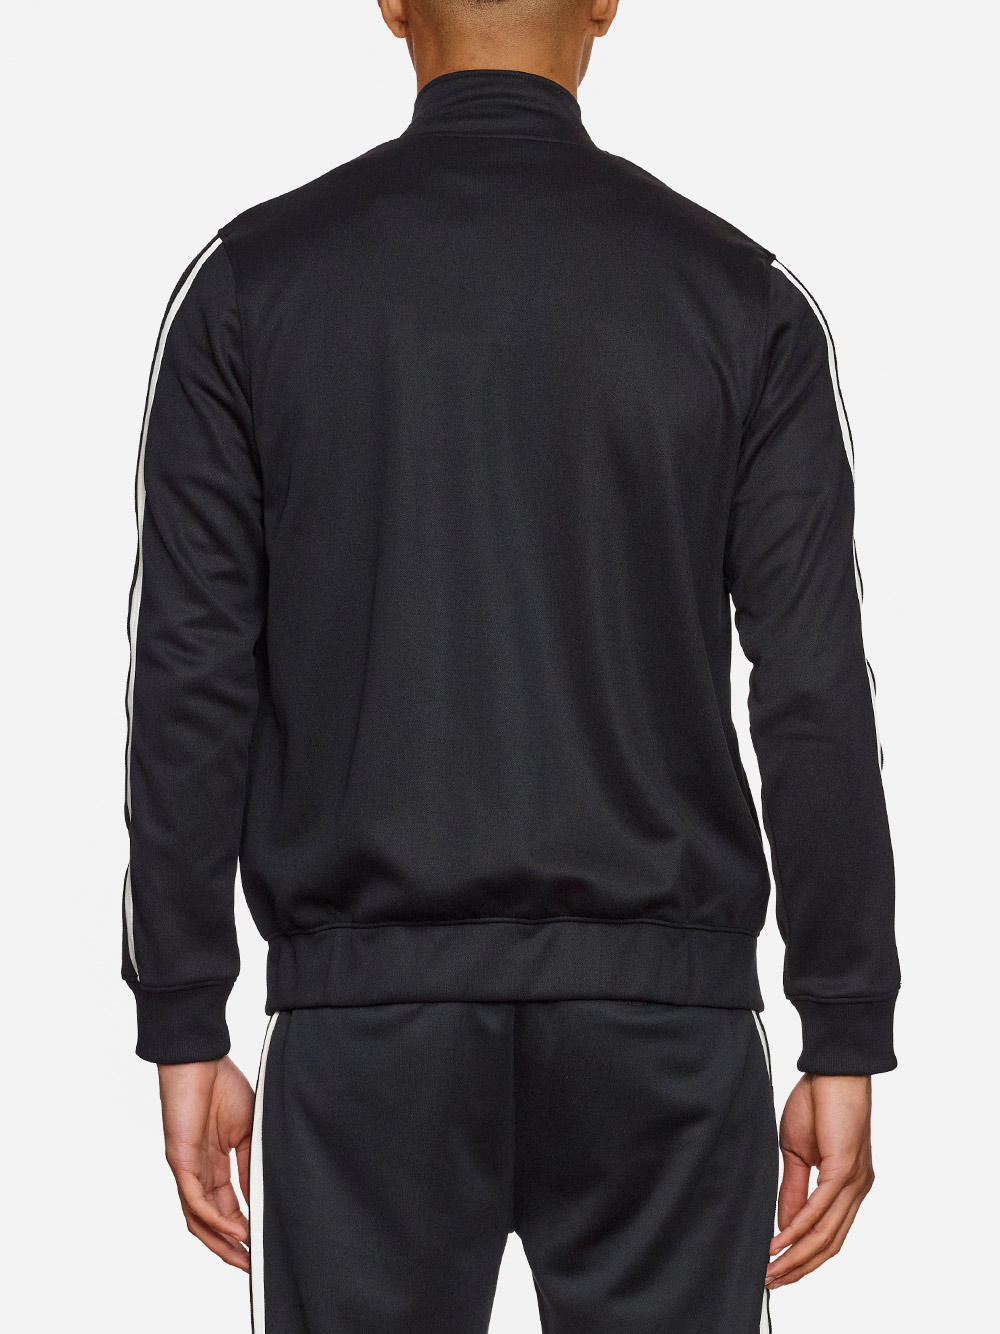 Black Track Suit Jacket